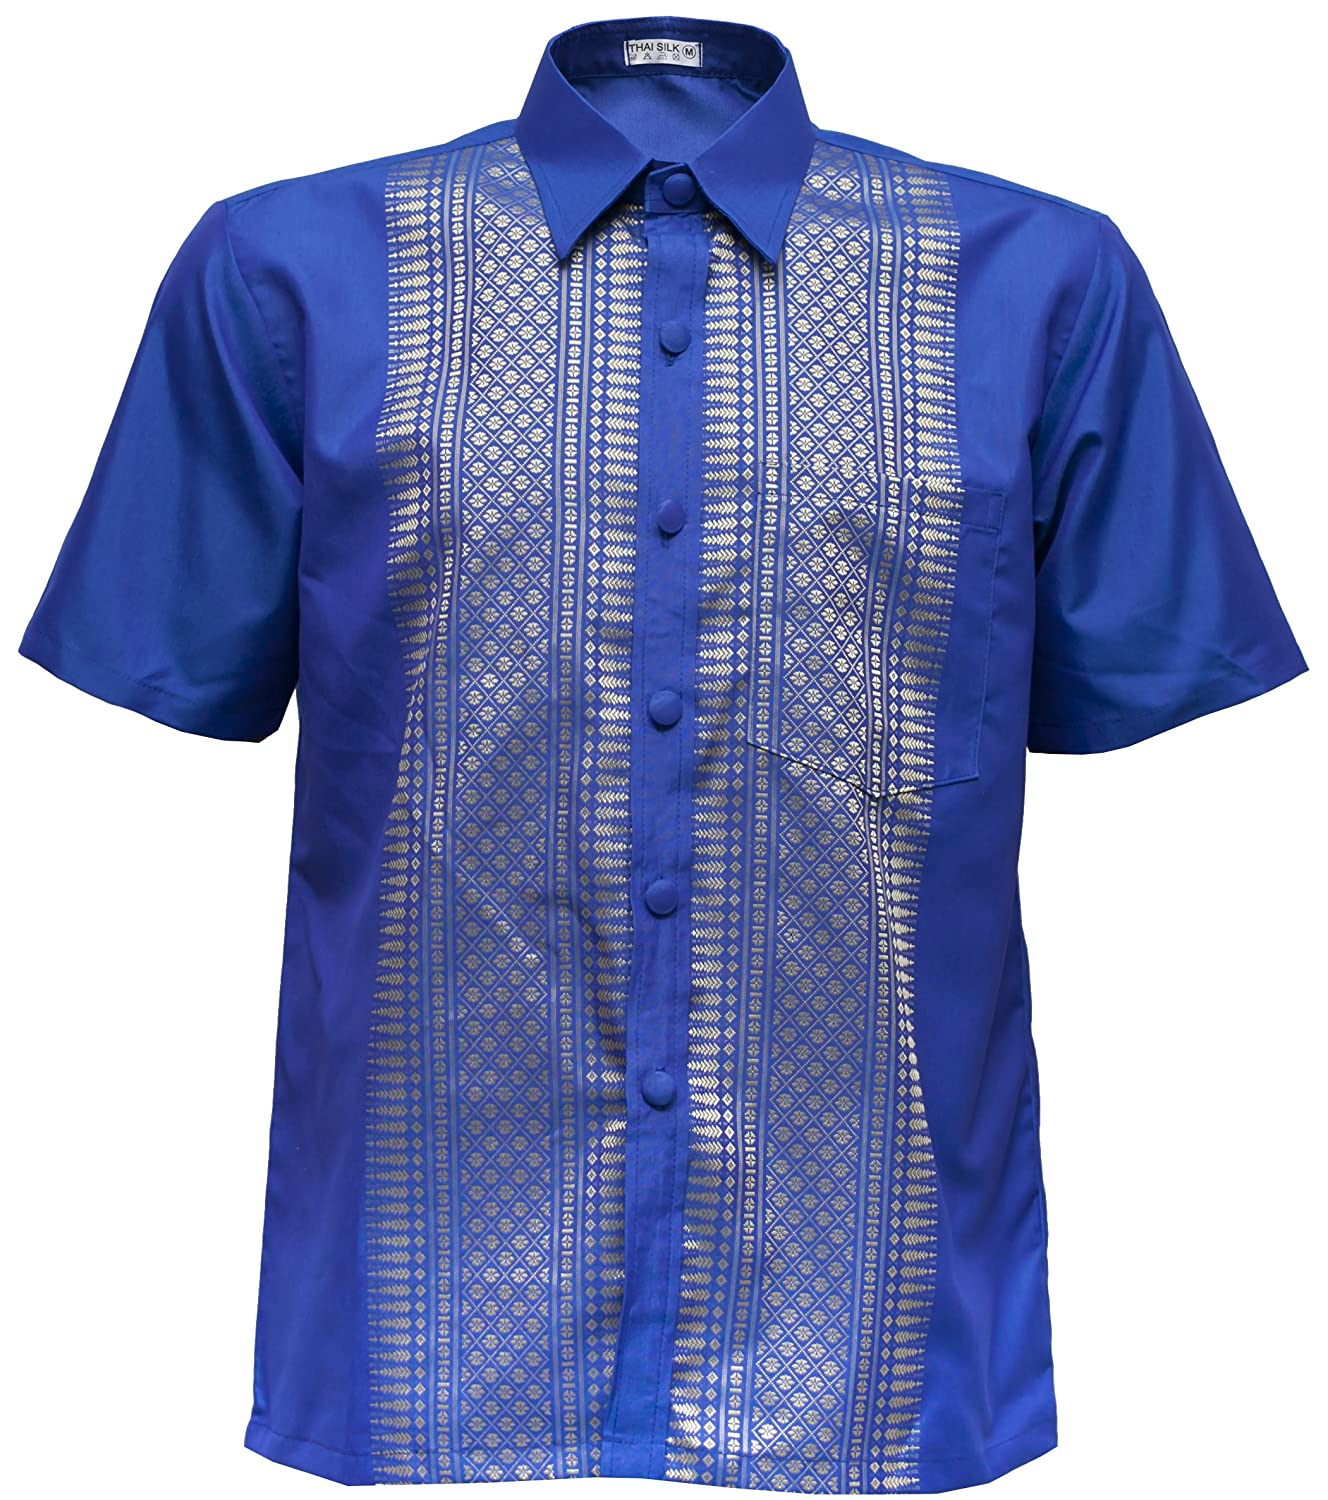 cbca774a3 Men's Shirt Short Sleeve Thai Silk Traditional Straight Collar at Amazon  Men's Clothing store: